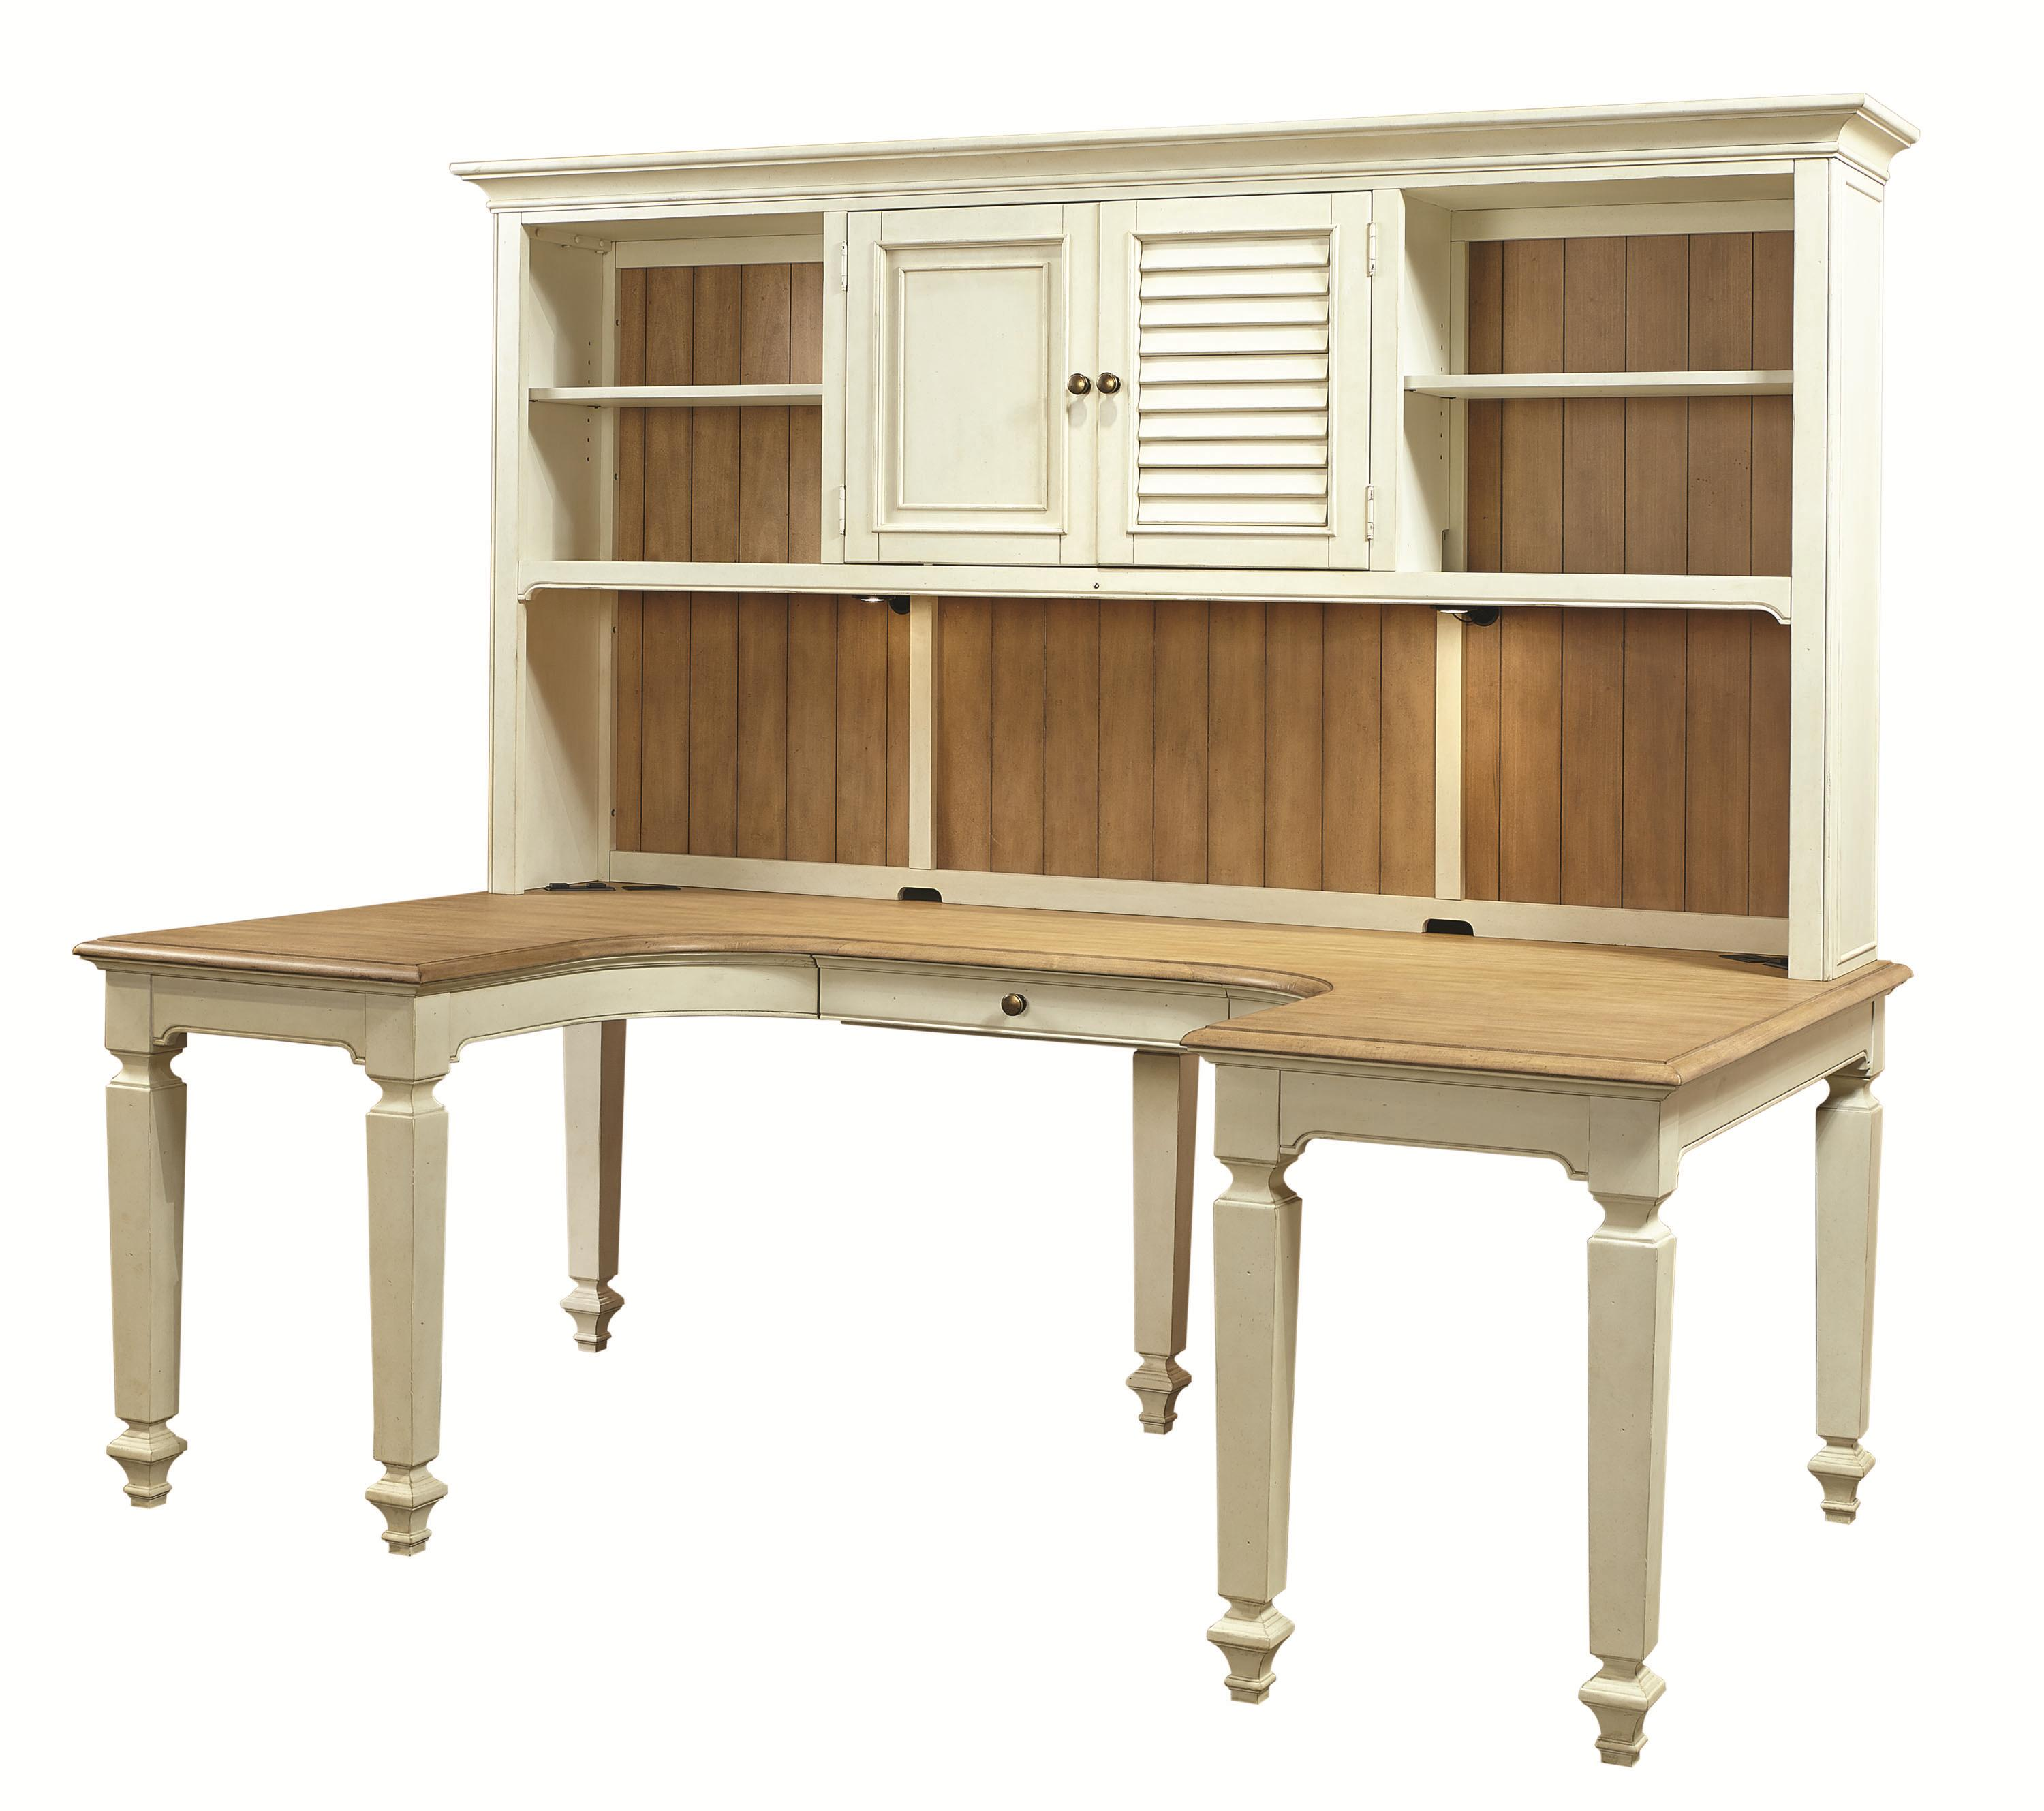 Marvelous photograph of Aspenhome Cottonwood U Shaped Desk and Hutch with 3 Shelves and  with #6C4C2D color and 3000x2658 pixels